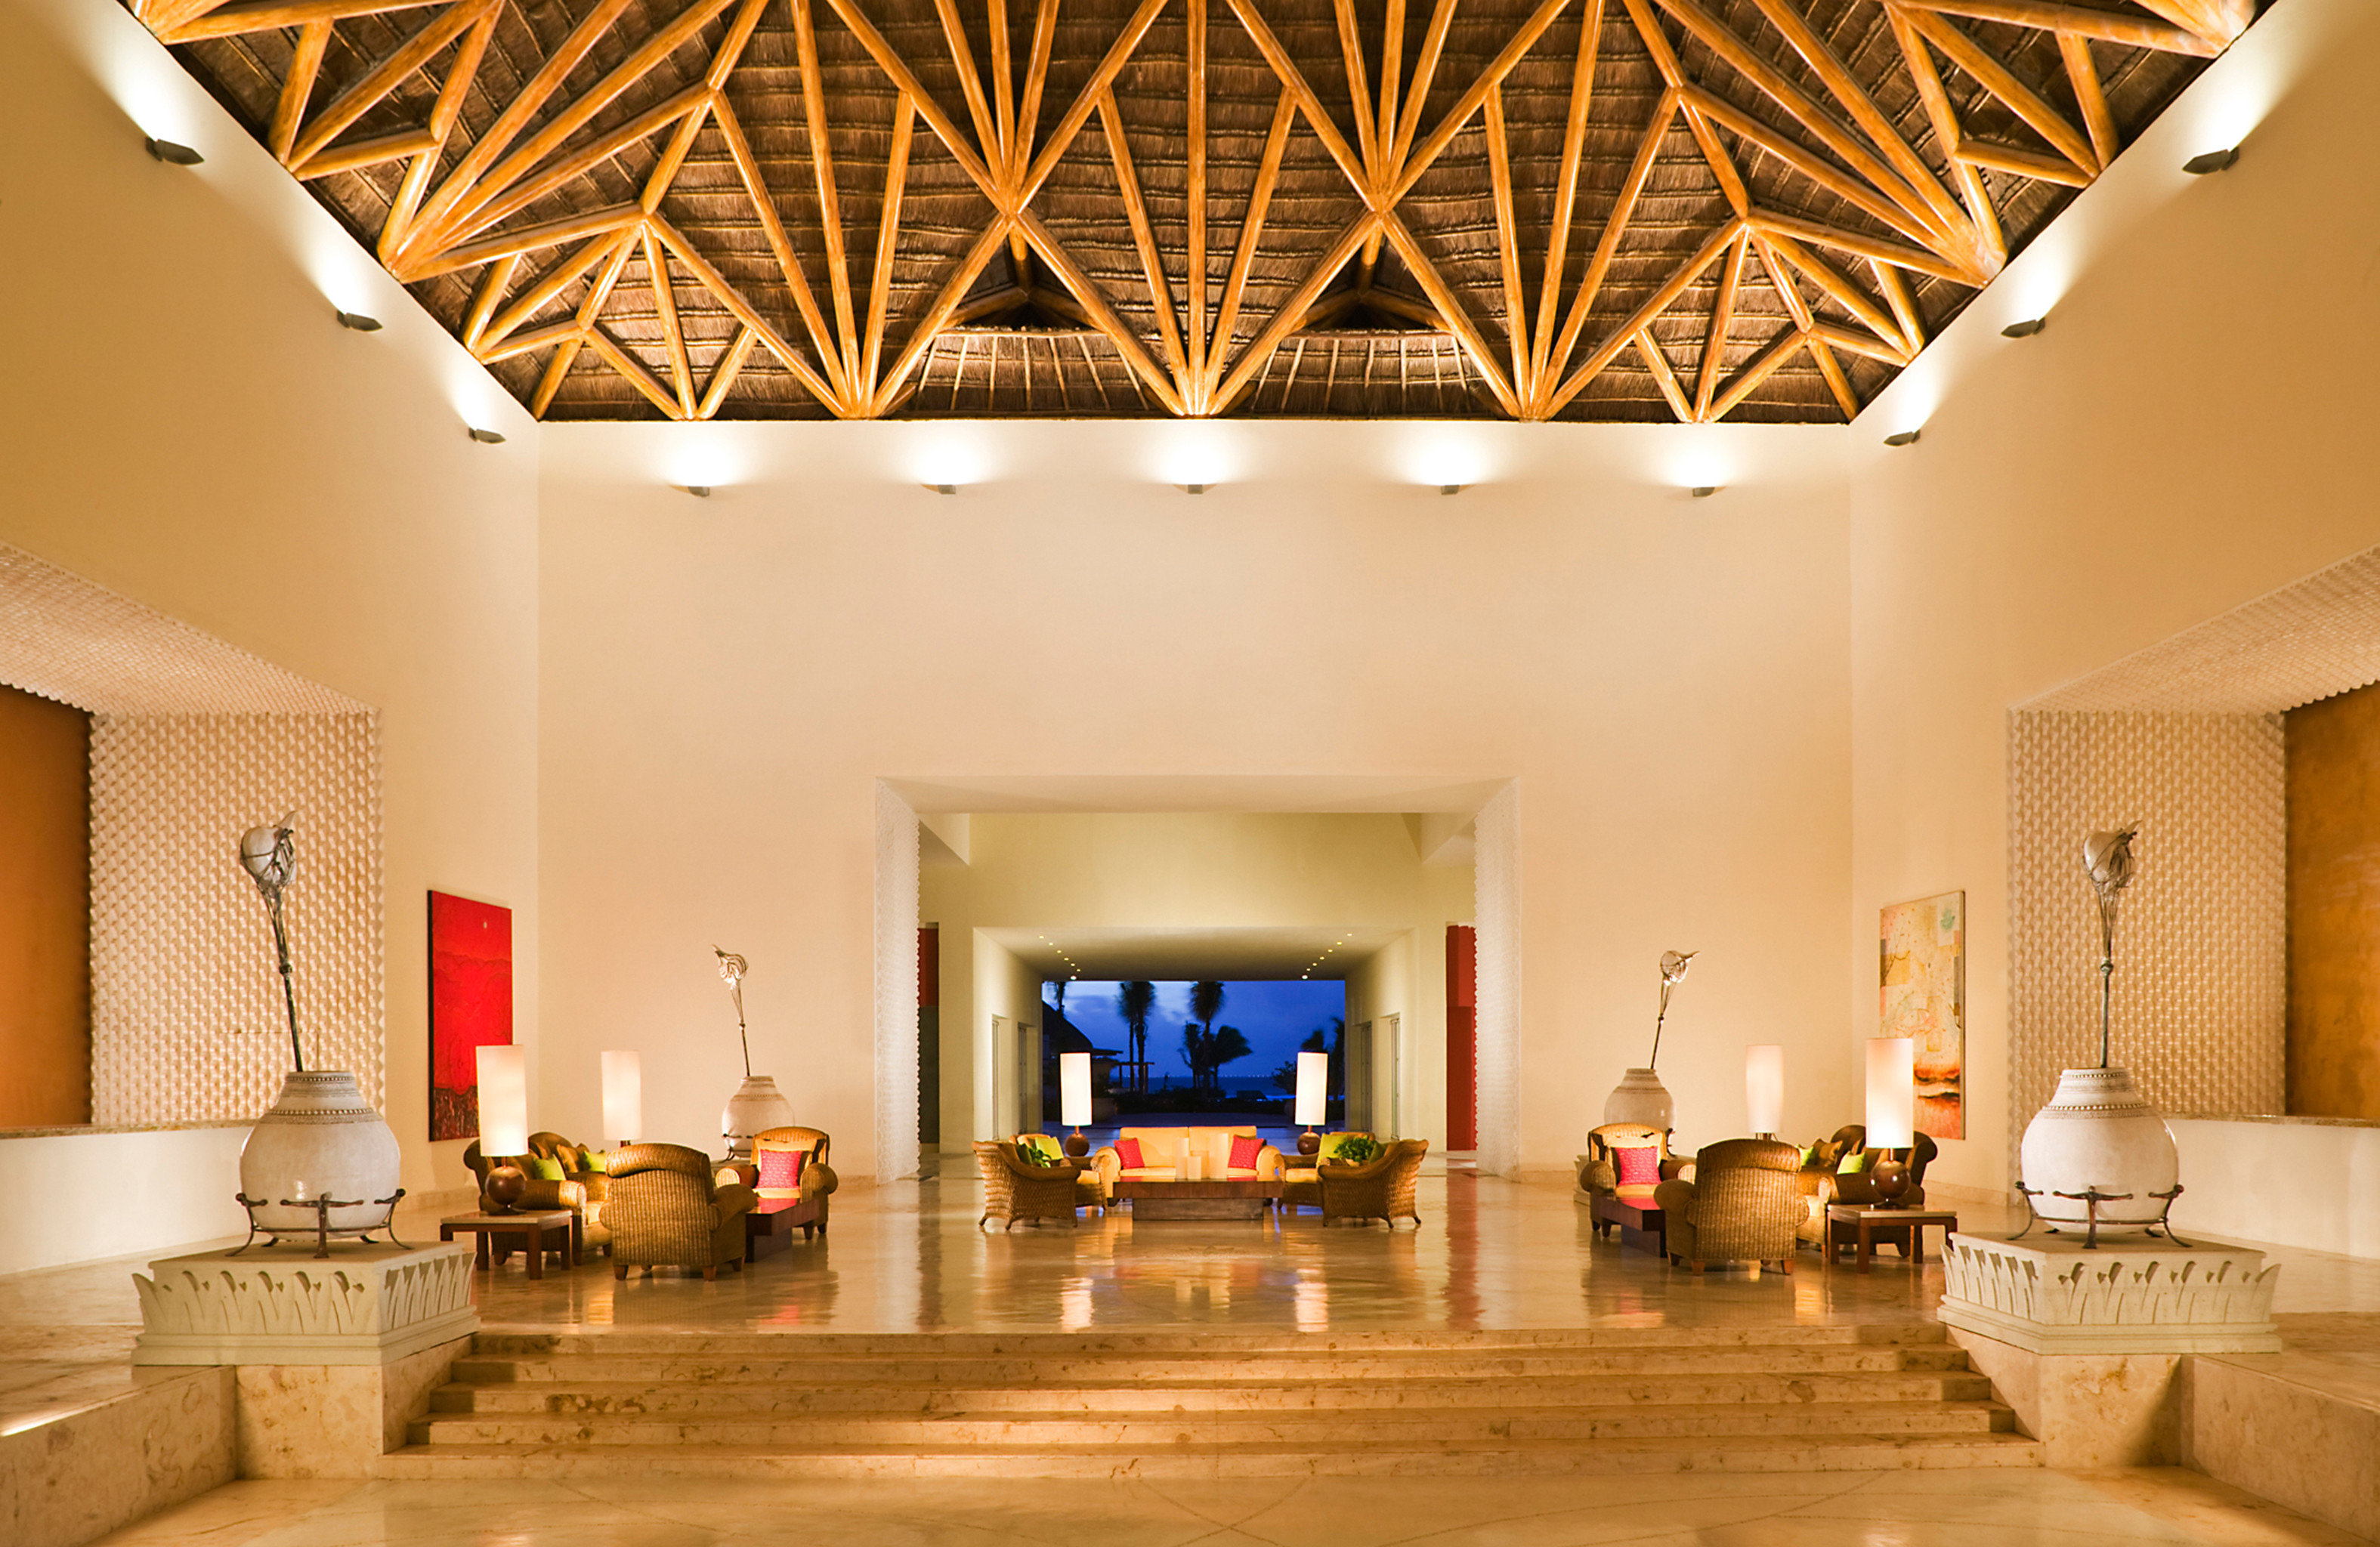 All-Inclusive Resorts Beachfront Elegant Family Travel Hotels Lounge Luxury Modern Scenic views Tropical Lobby property living room home lighting mansion Villa